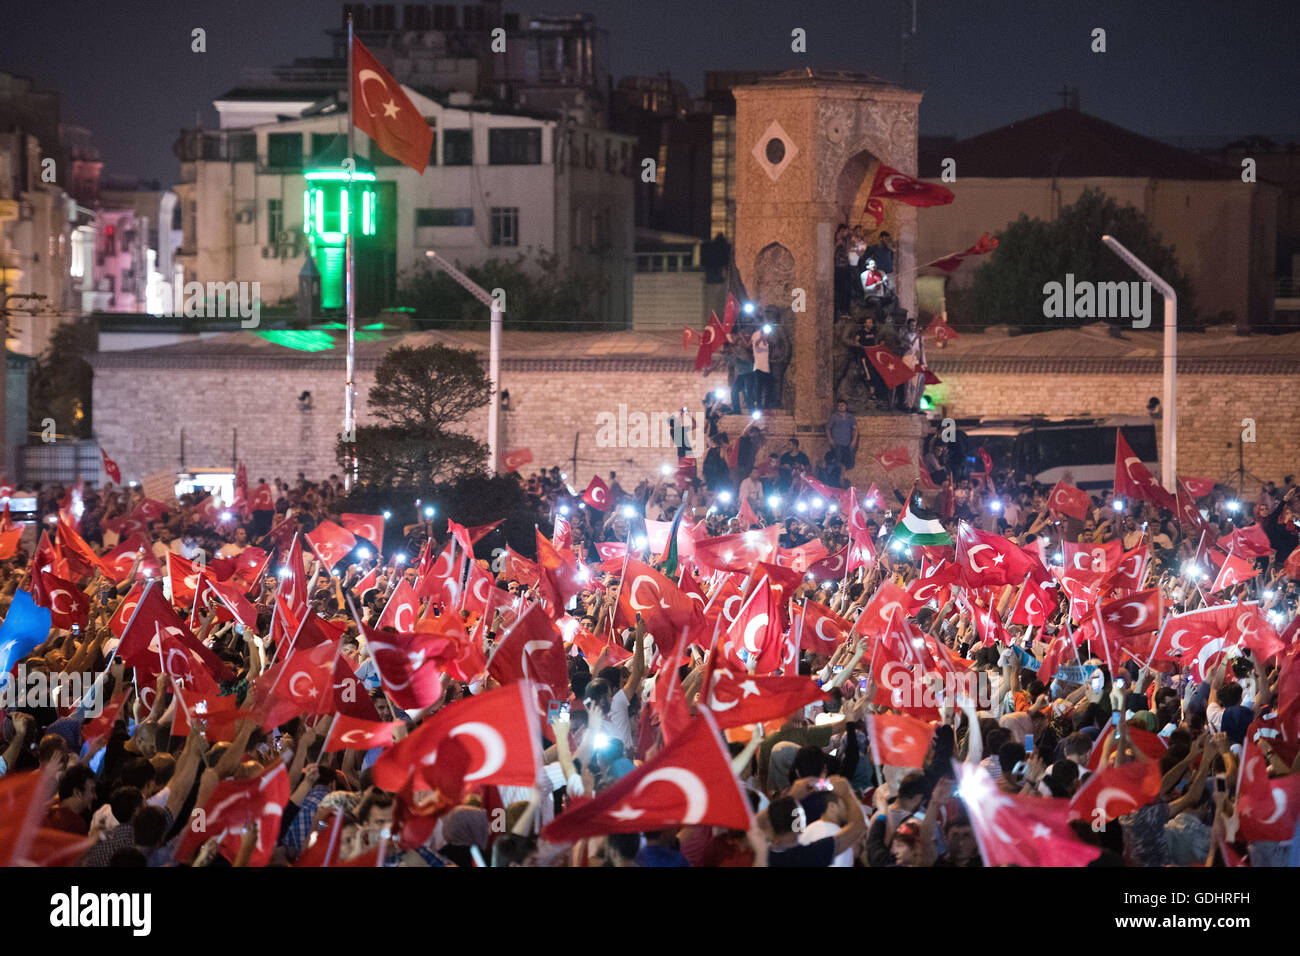 Istanbul, Turkey. 17th July, 2016. People shout slogans and hold flags during a demonstration at Taksim Square in Stock Photo